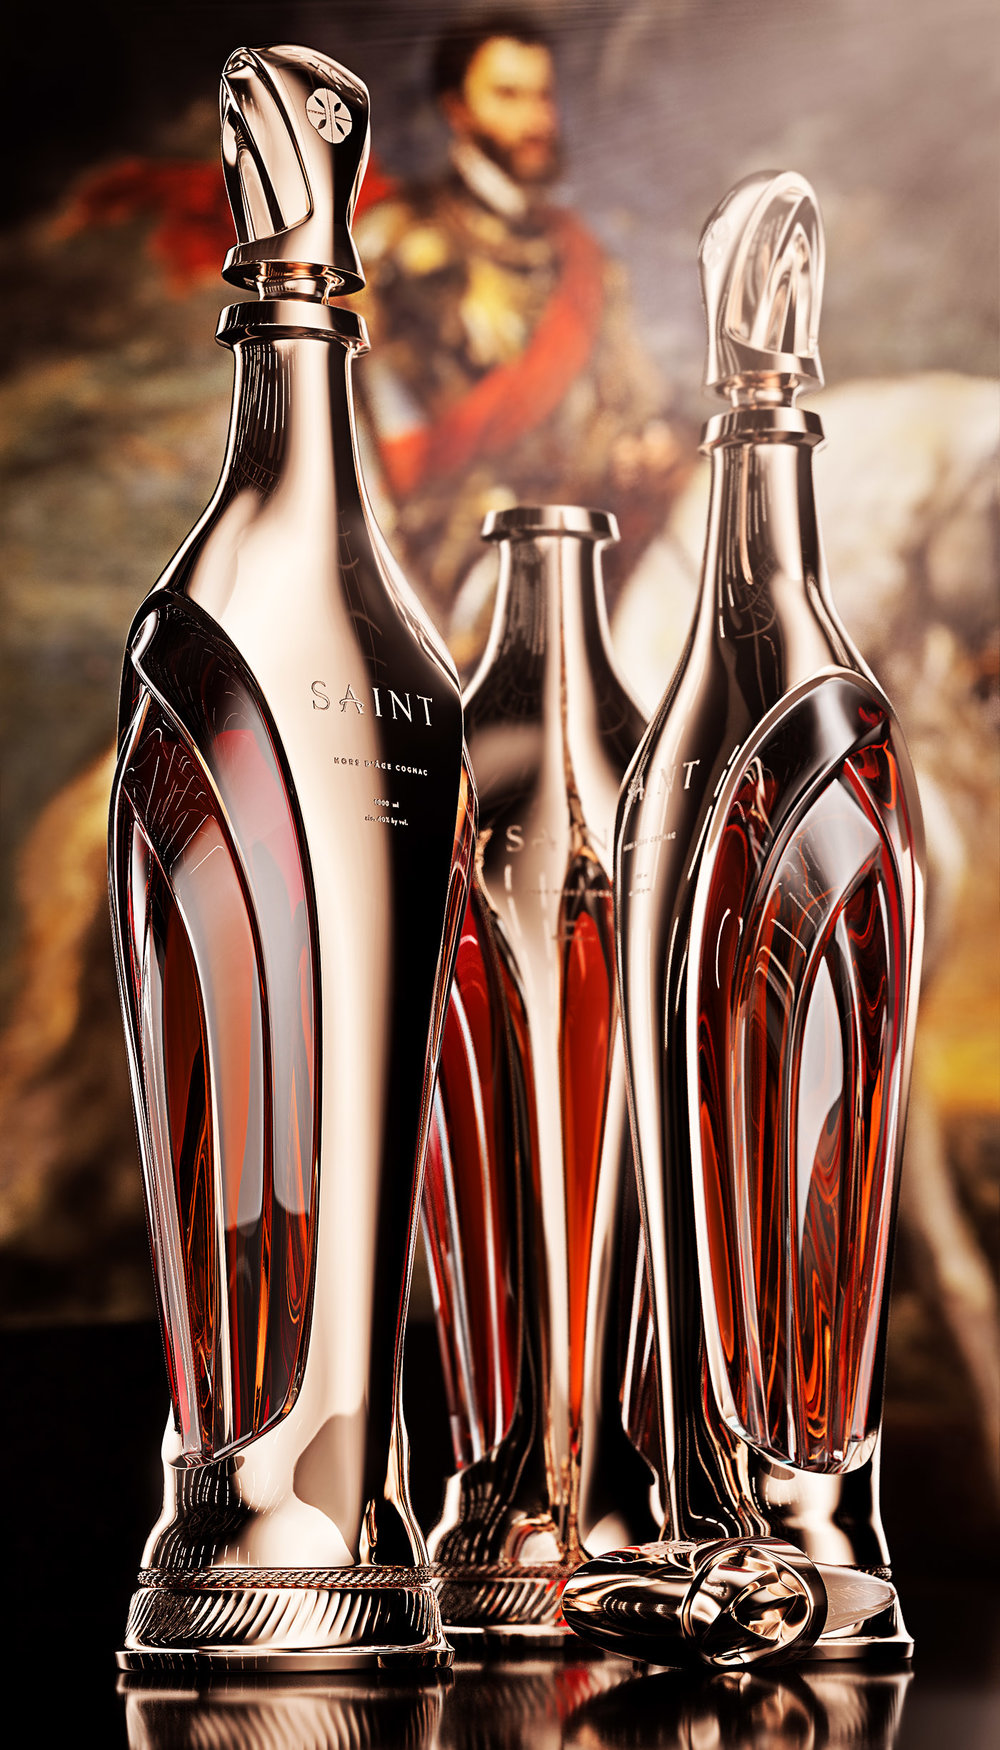 Luxury Cognac bottle concept Saint 9.jpg